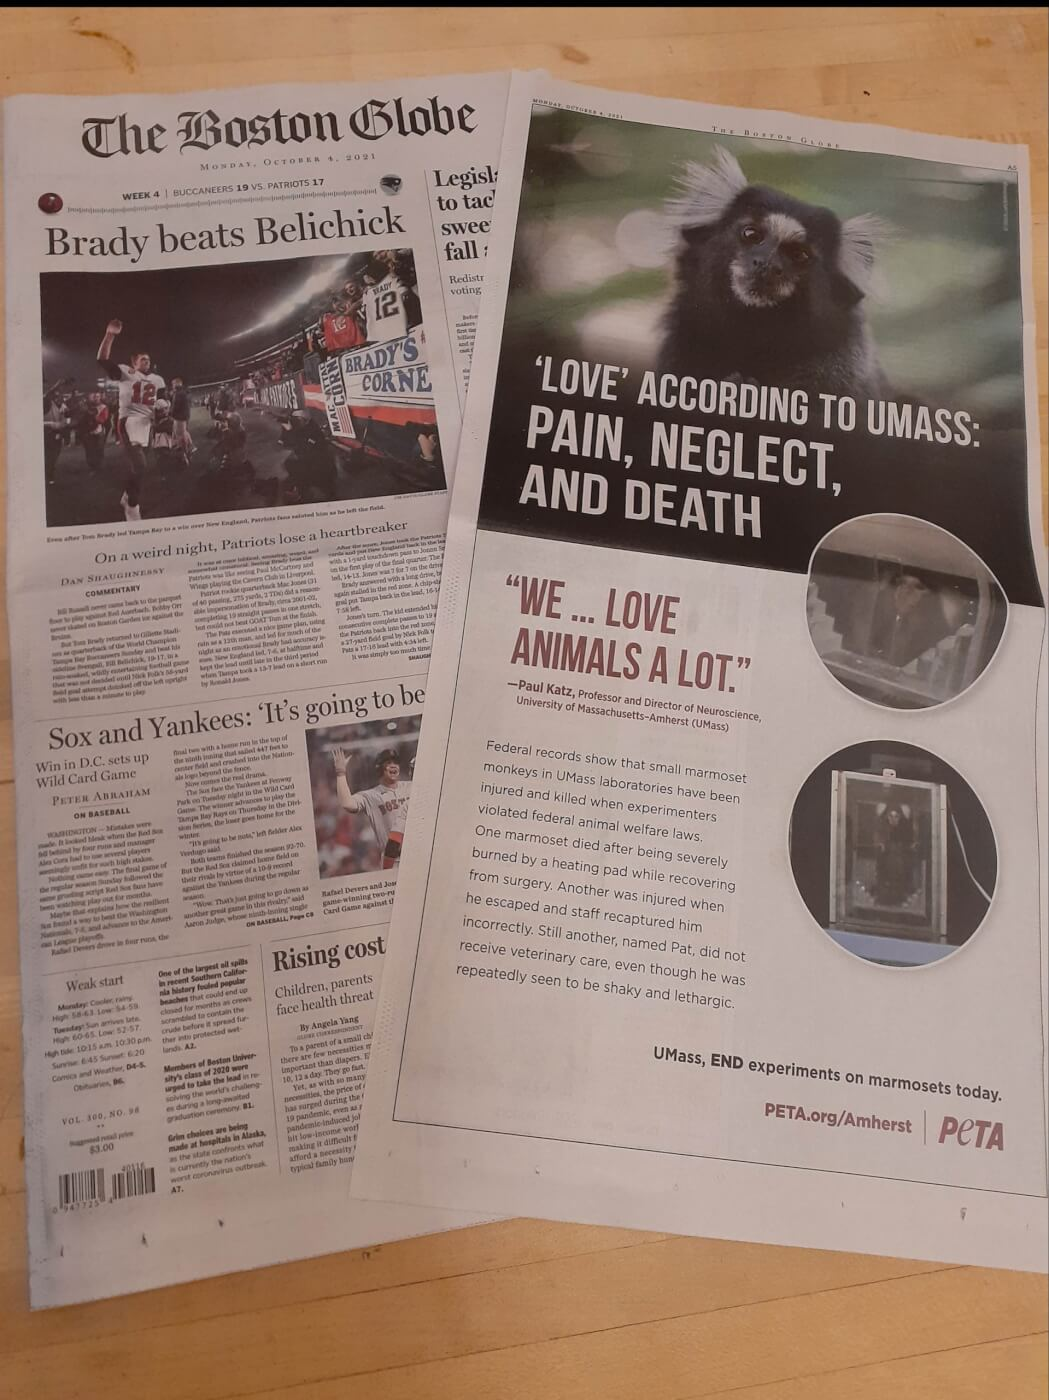 Ad in Boston Globe about marmoset experiments at UMass Amherst